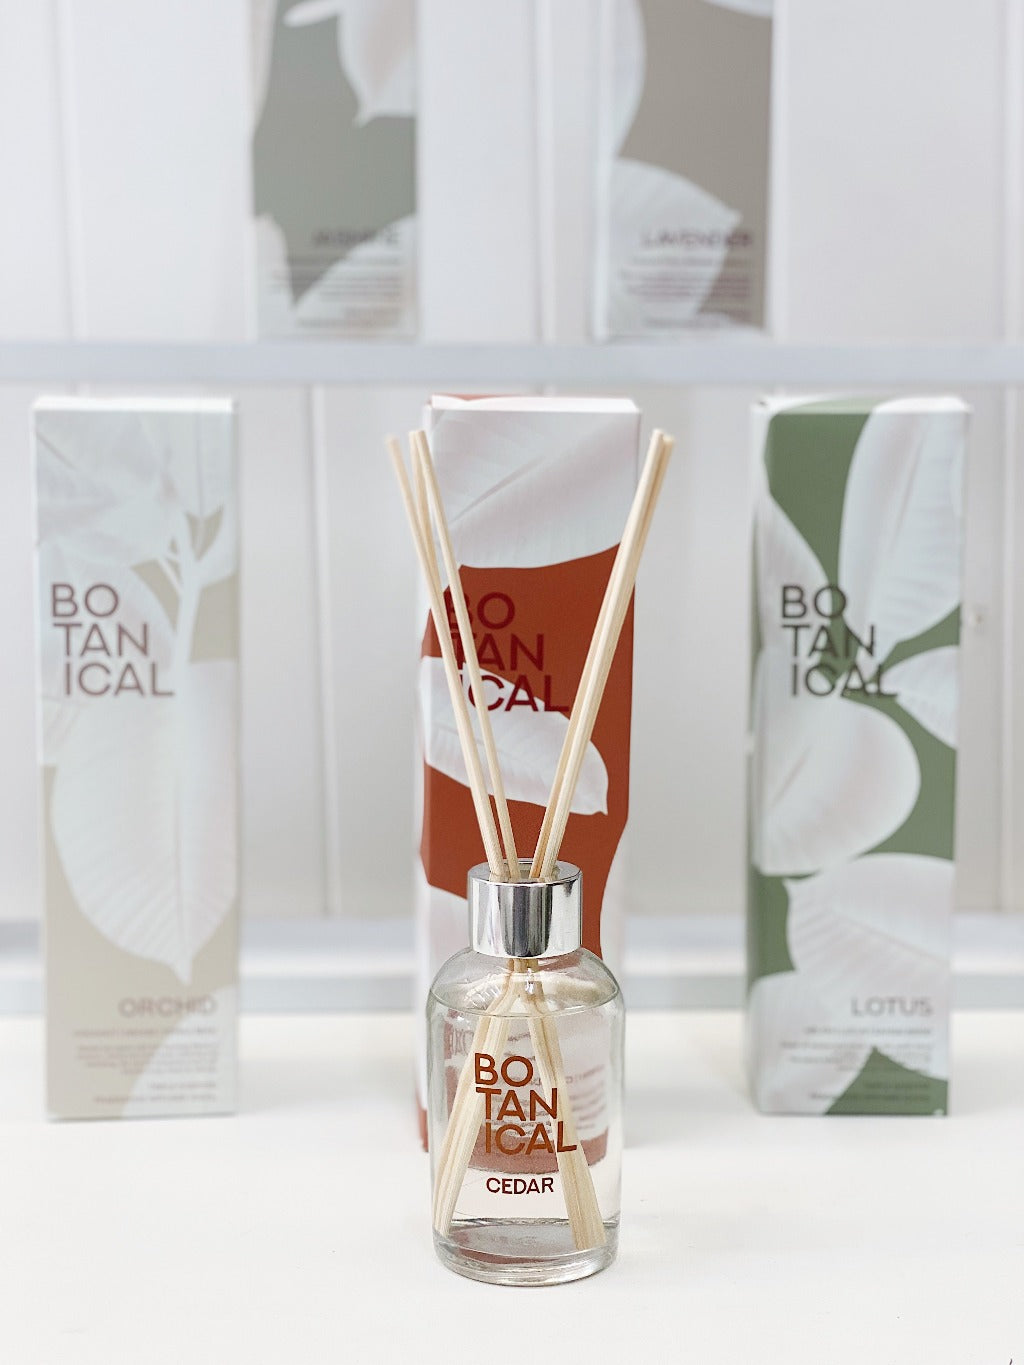 Botanical 100ml Reed Diffuser – Lotus - Salt&Pepper - Dispel all tension and stress with this high-end blend of melon, lotus and sandalwood - Natural essential oils - burn-time of 25 hours |Bliss Gifts & Homewares - Unit 8, 259 Princes Hwy Ulladulla - Shop Online & In store - 0427795959, 44541523 - Australia wide shipping